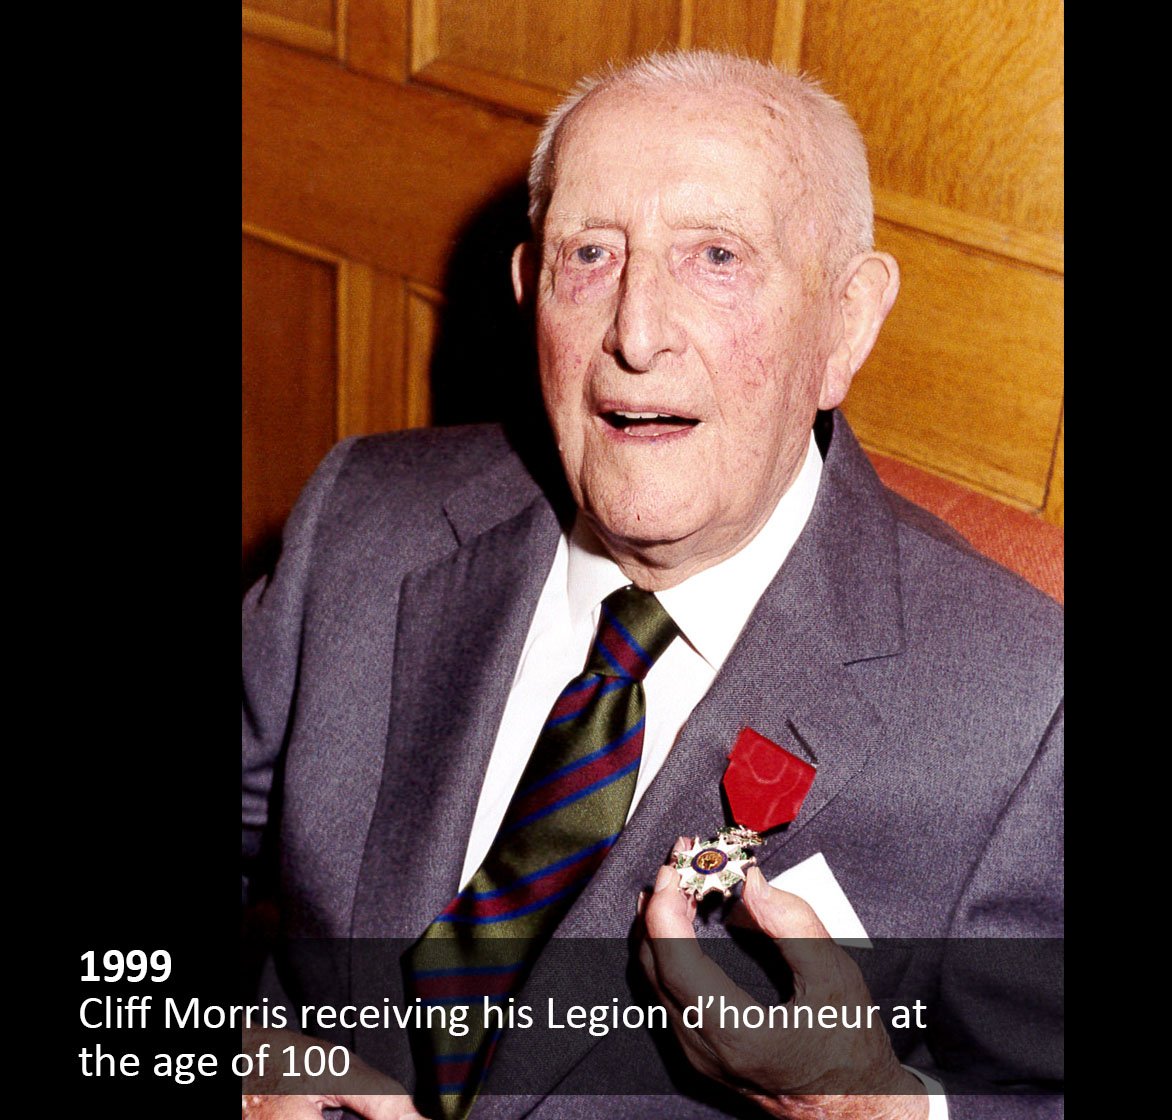 Cliff Morris receiving his Legion d'honneur at the age of 100